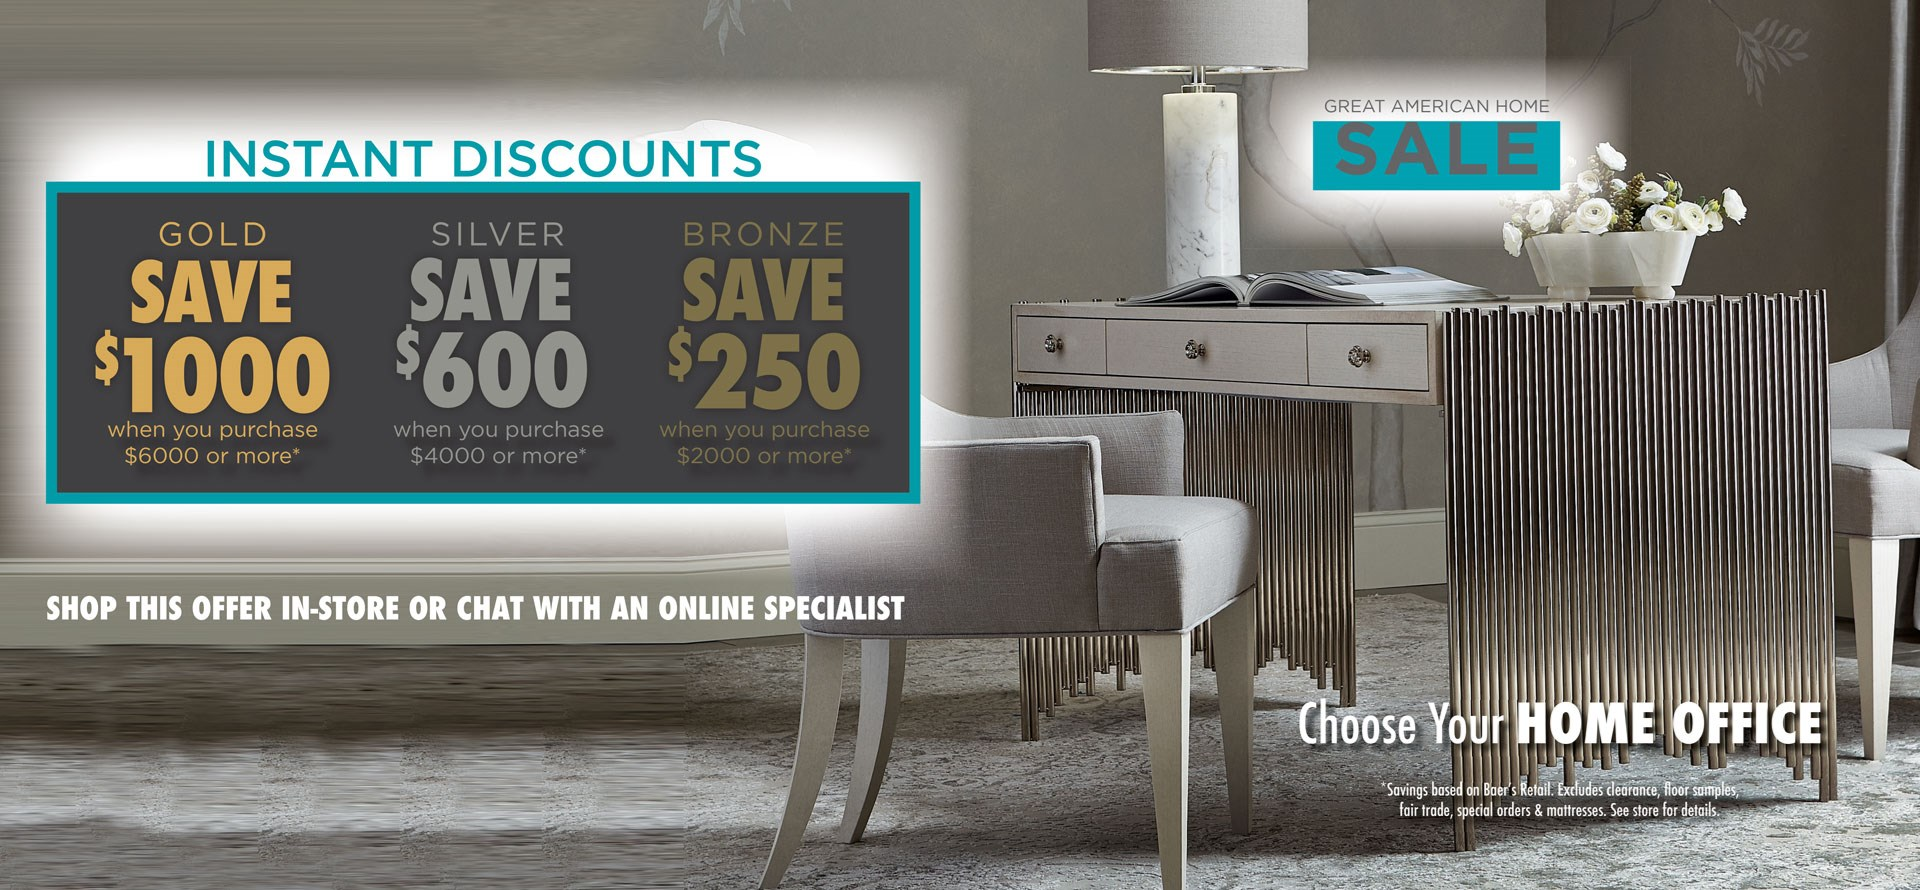 Great American Home Sale - Home Office